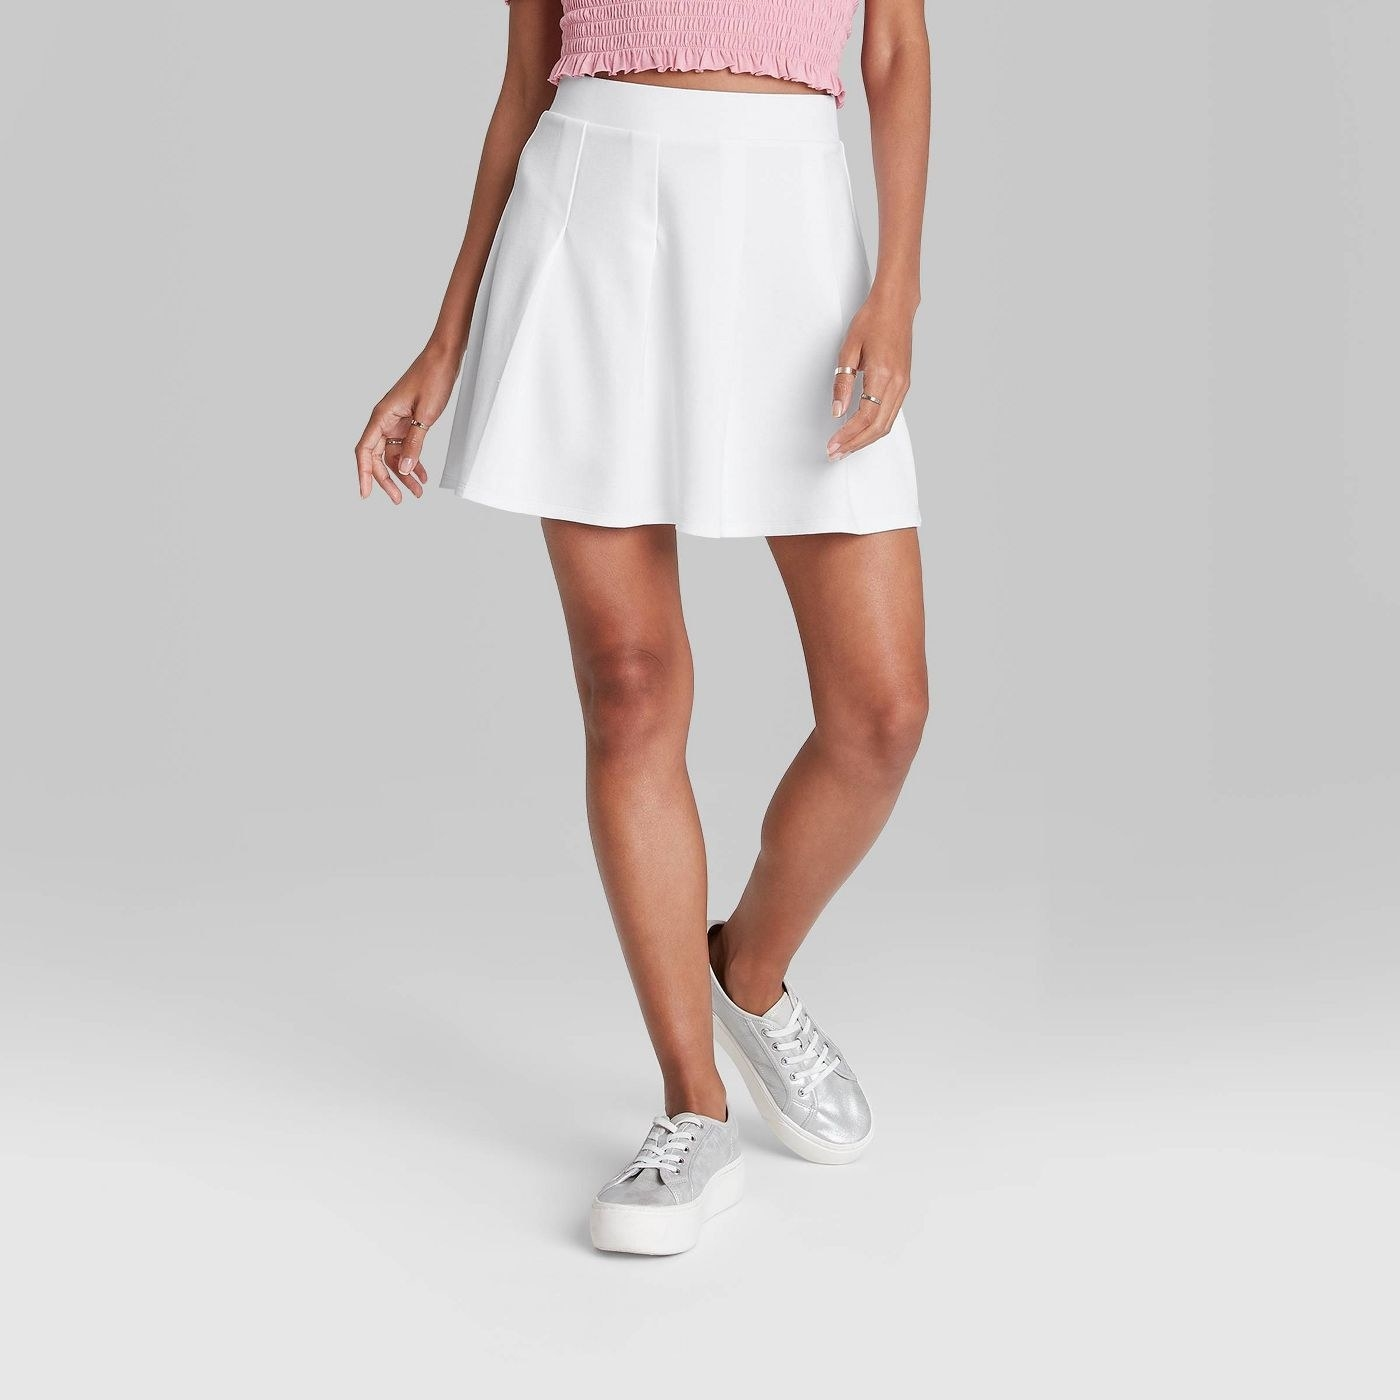 Model wearing white shirt with three pleats at the top